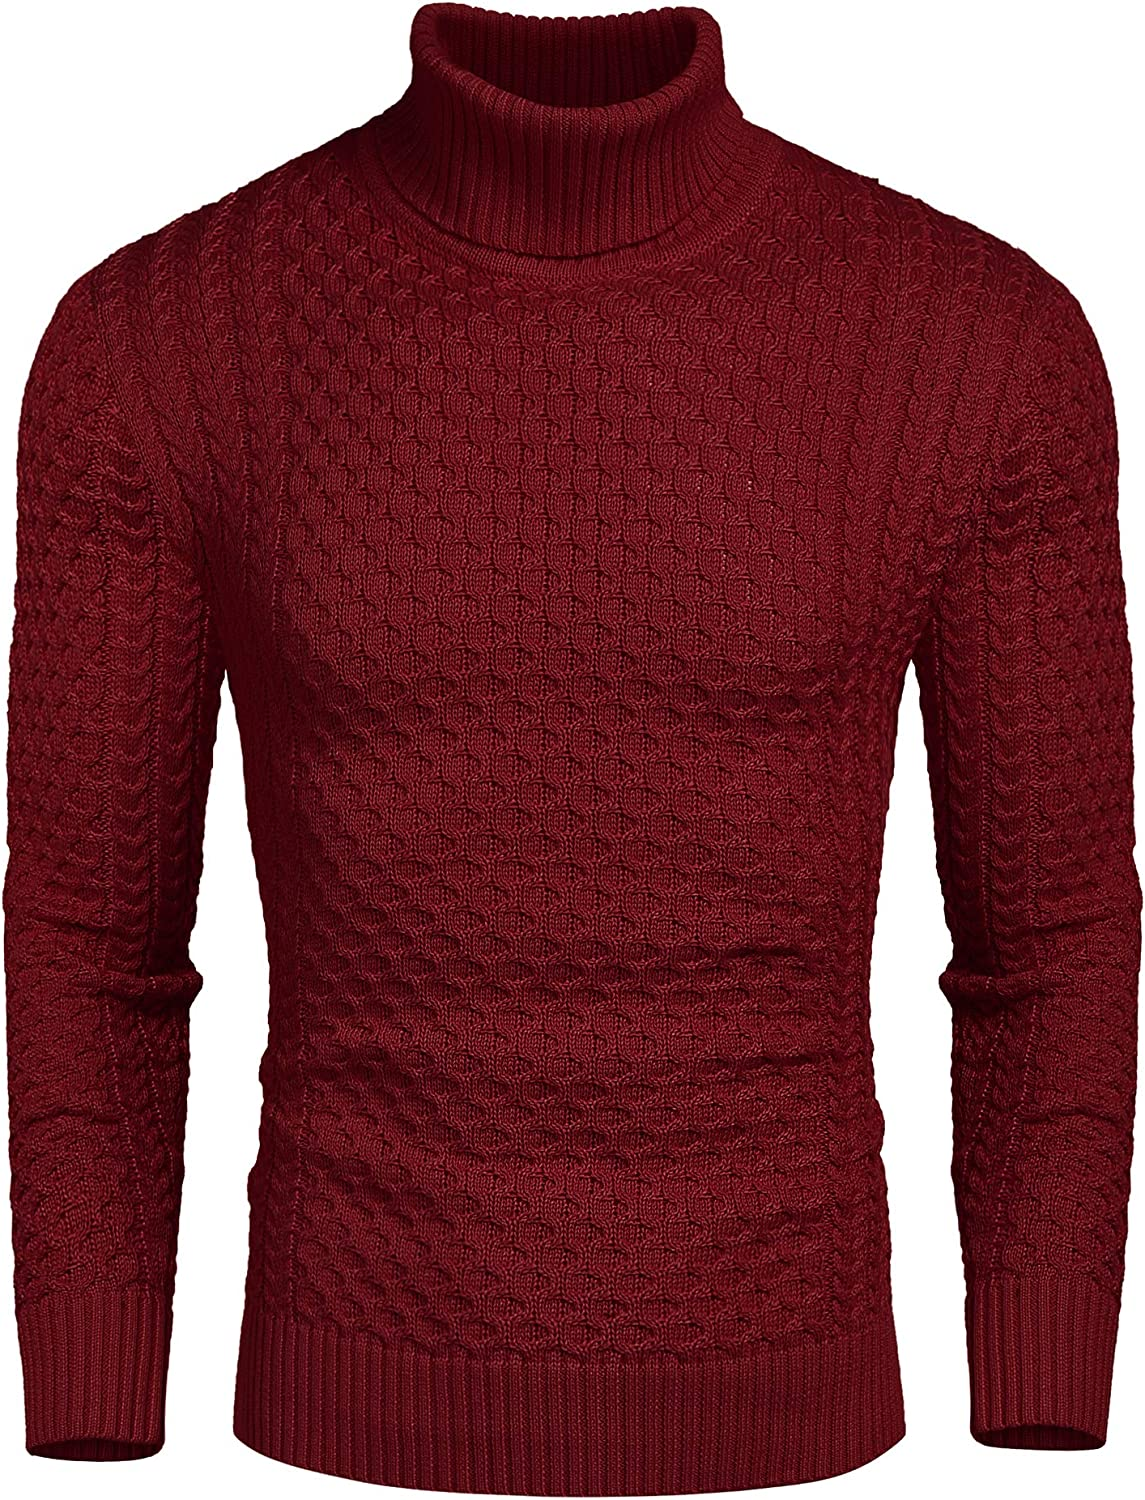 COOFANDY Men's Slim Fit Turtleneck Sweater Casual Knitted Twisted Pullover Solid Sweaters